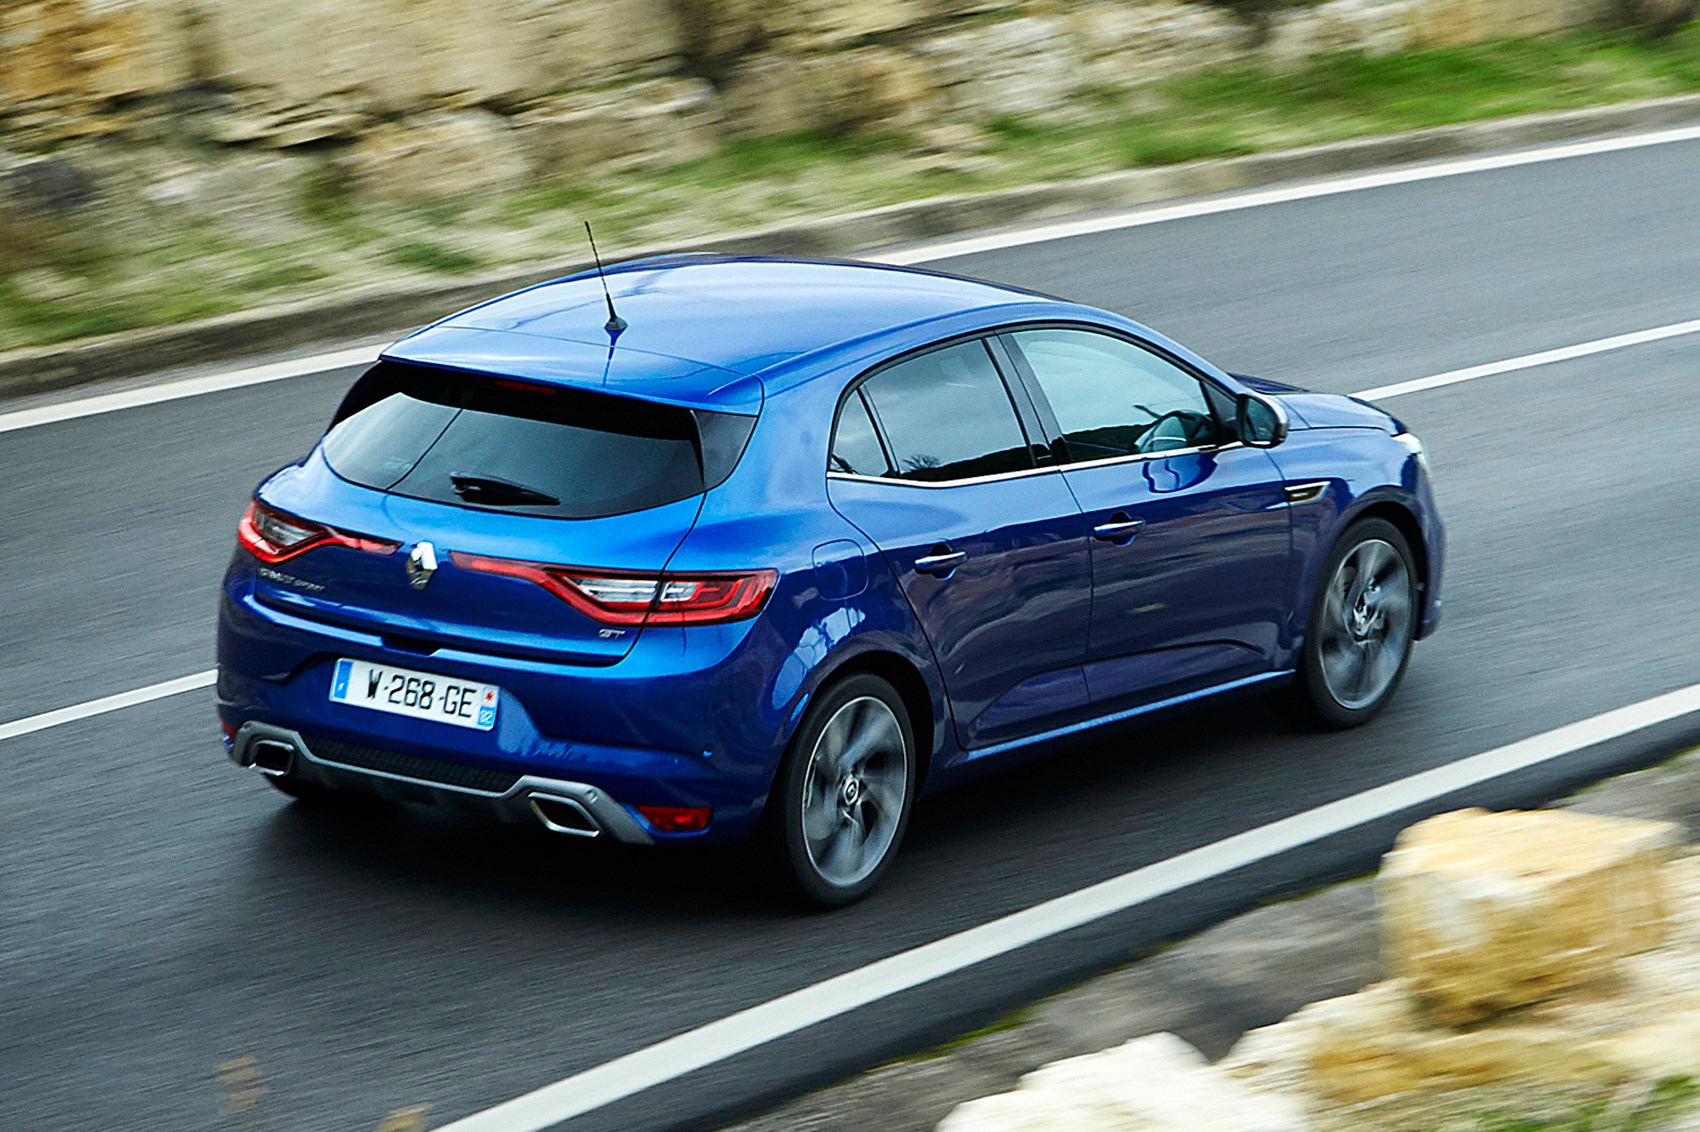 renault megane uk prices and specs announced range kicks off from 16 600 by car magazine. Black Bedroom Furniture Sets. Home Design Ideas